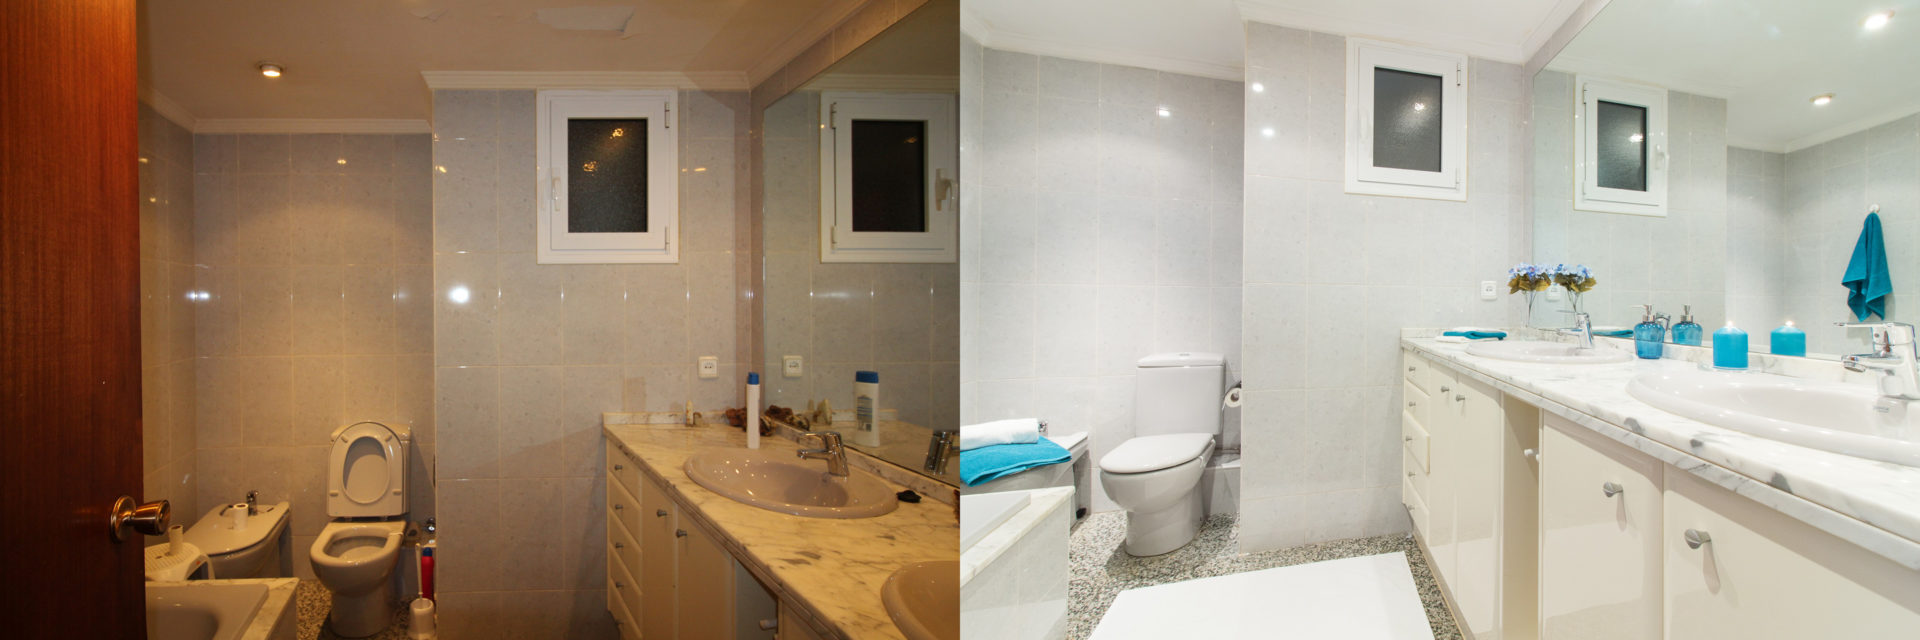 impuls home staging baño antes y despues